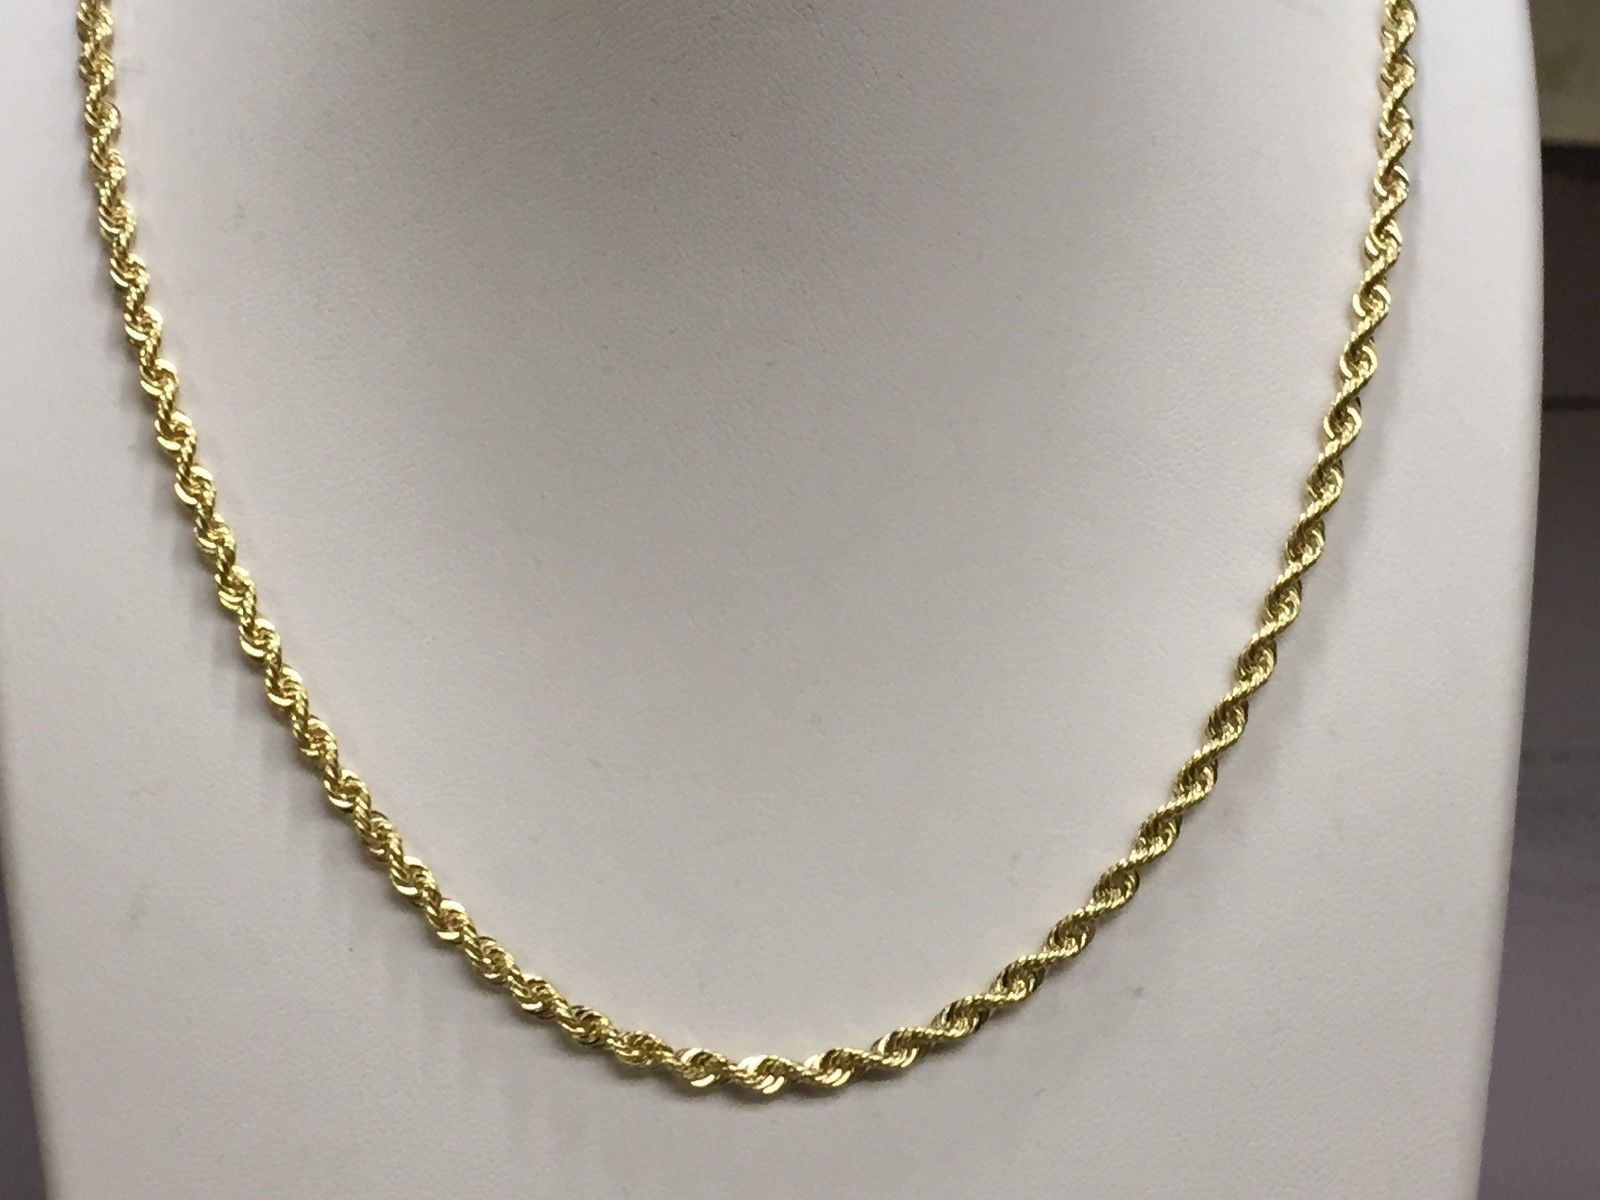 14k Solid Gold Rope Pendant Link Chain Necklace 16 3mm 13 Grams Sr023 Ebay Gold Chains For Men 14kt Gold Chains Gold Chains